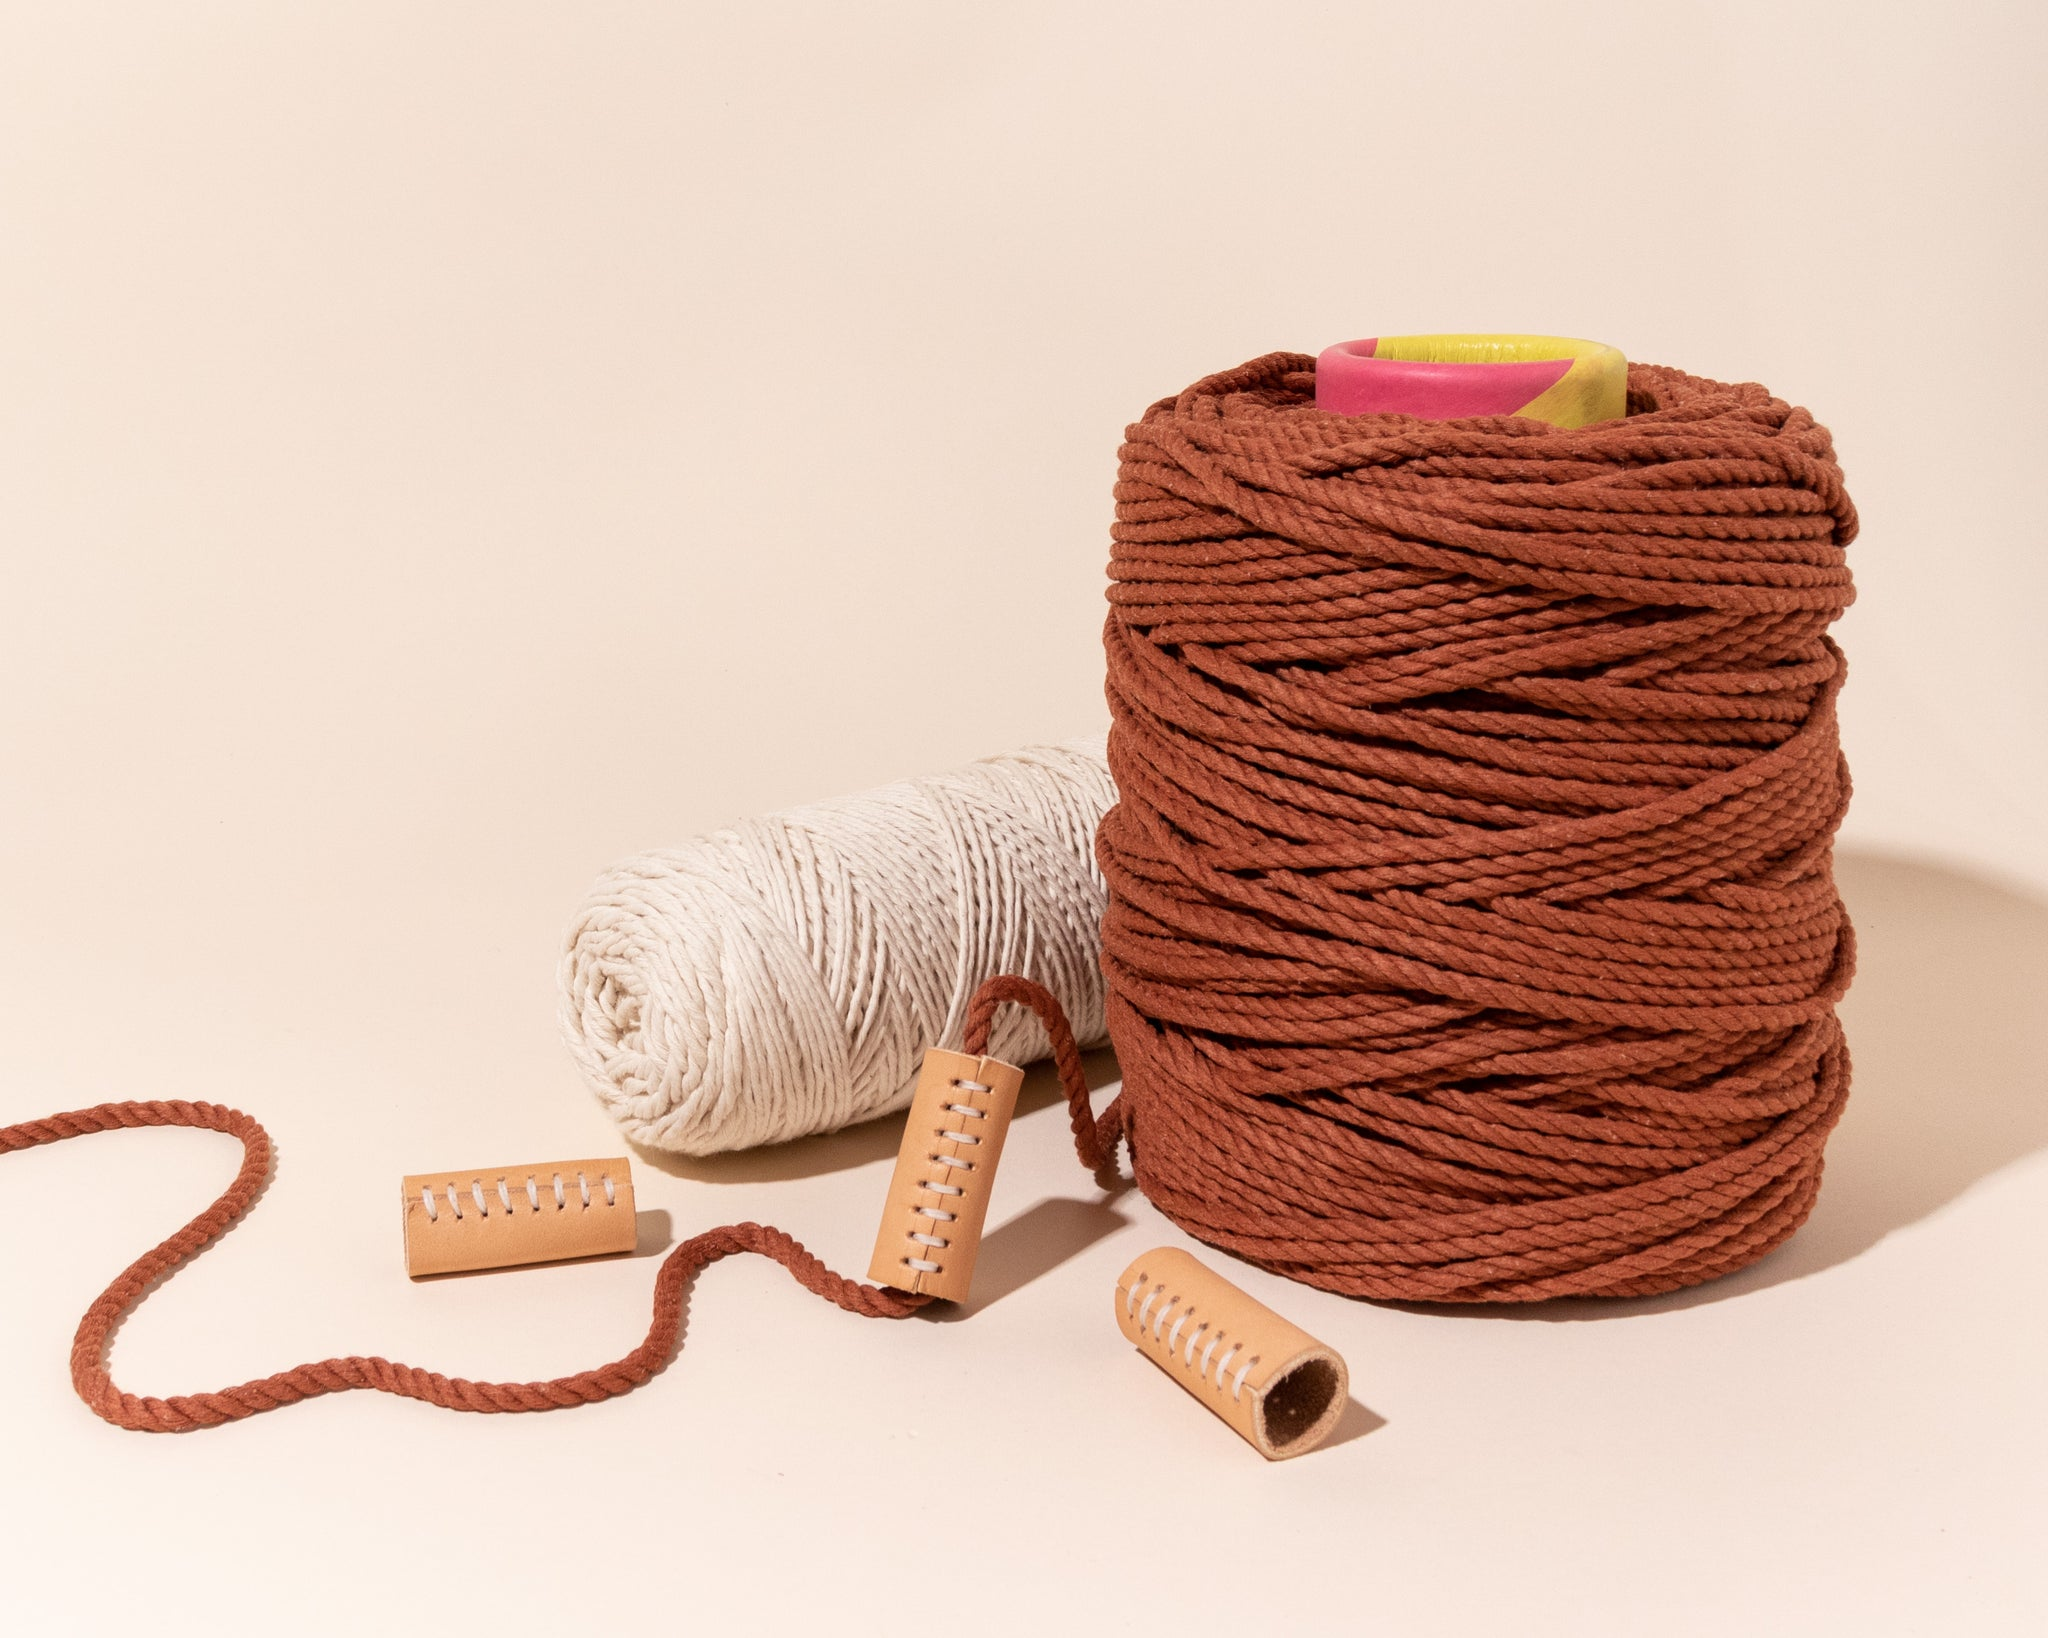 Modern Macramé Quality Cotton Rope and Cord, pictured with Leather Haiti Beads